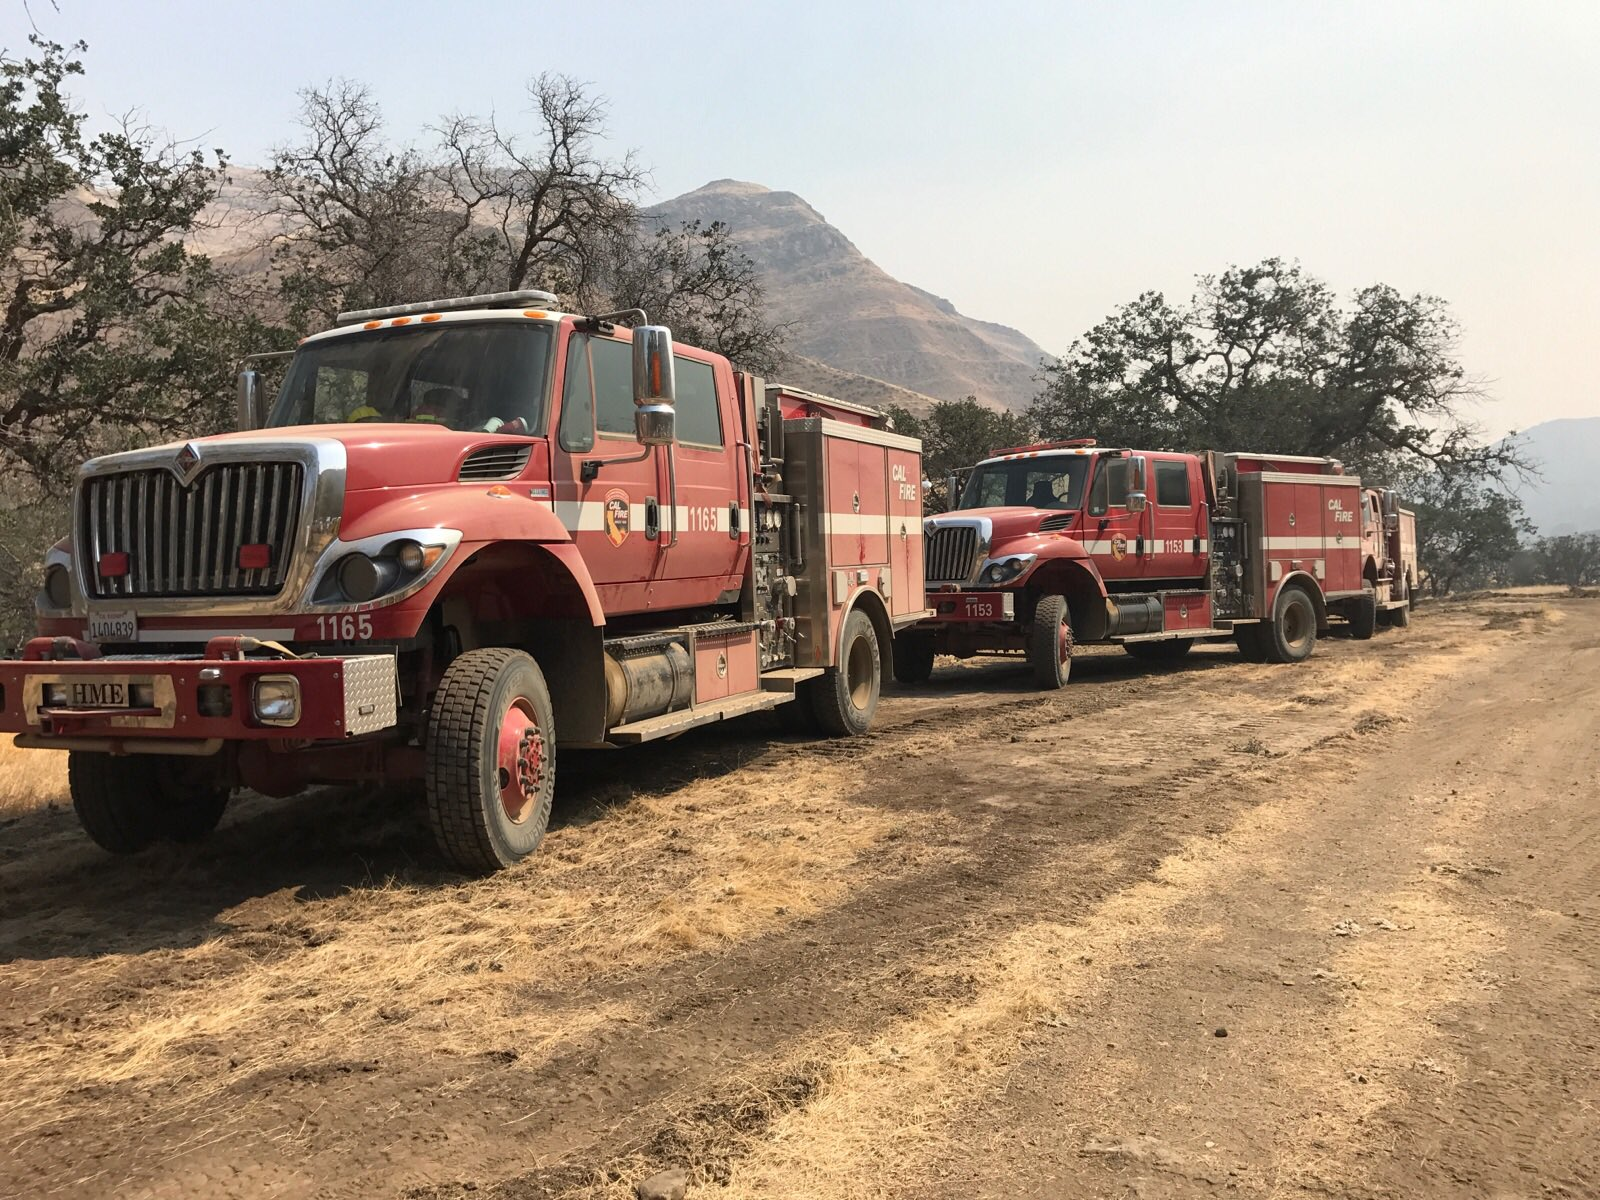 The Garza Fire near Avenal has now burned 48,403 acres which is a little more than 75 square miles, according to CalFire. (Photo: CalFire/FresnoCoFire)